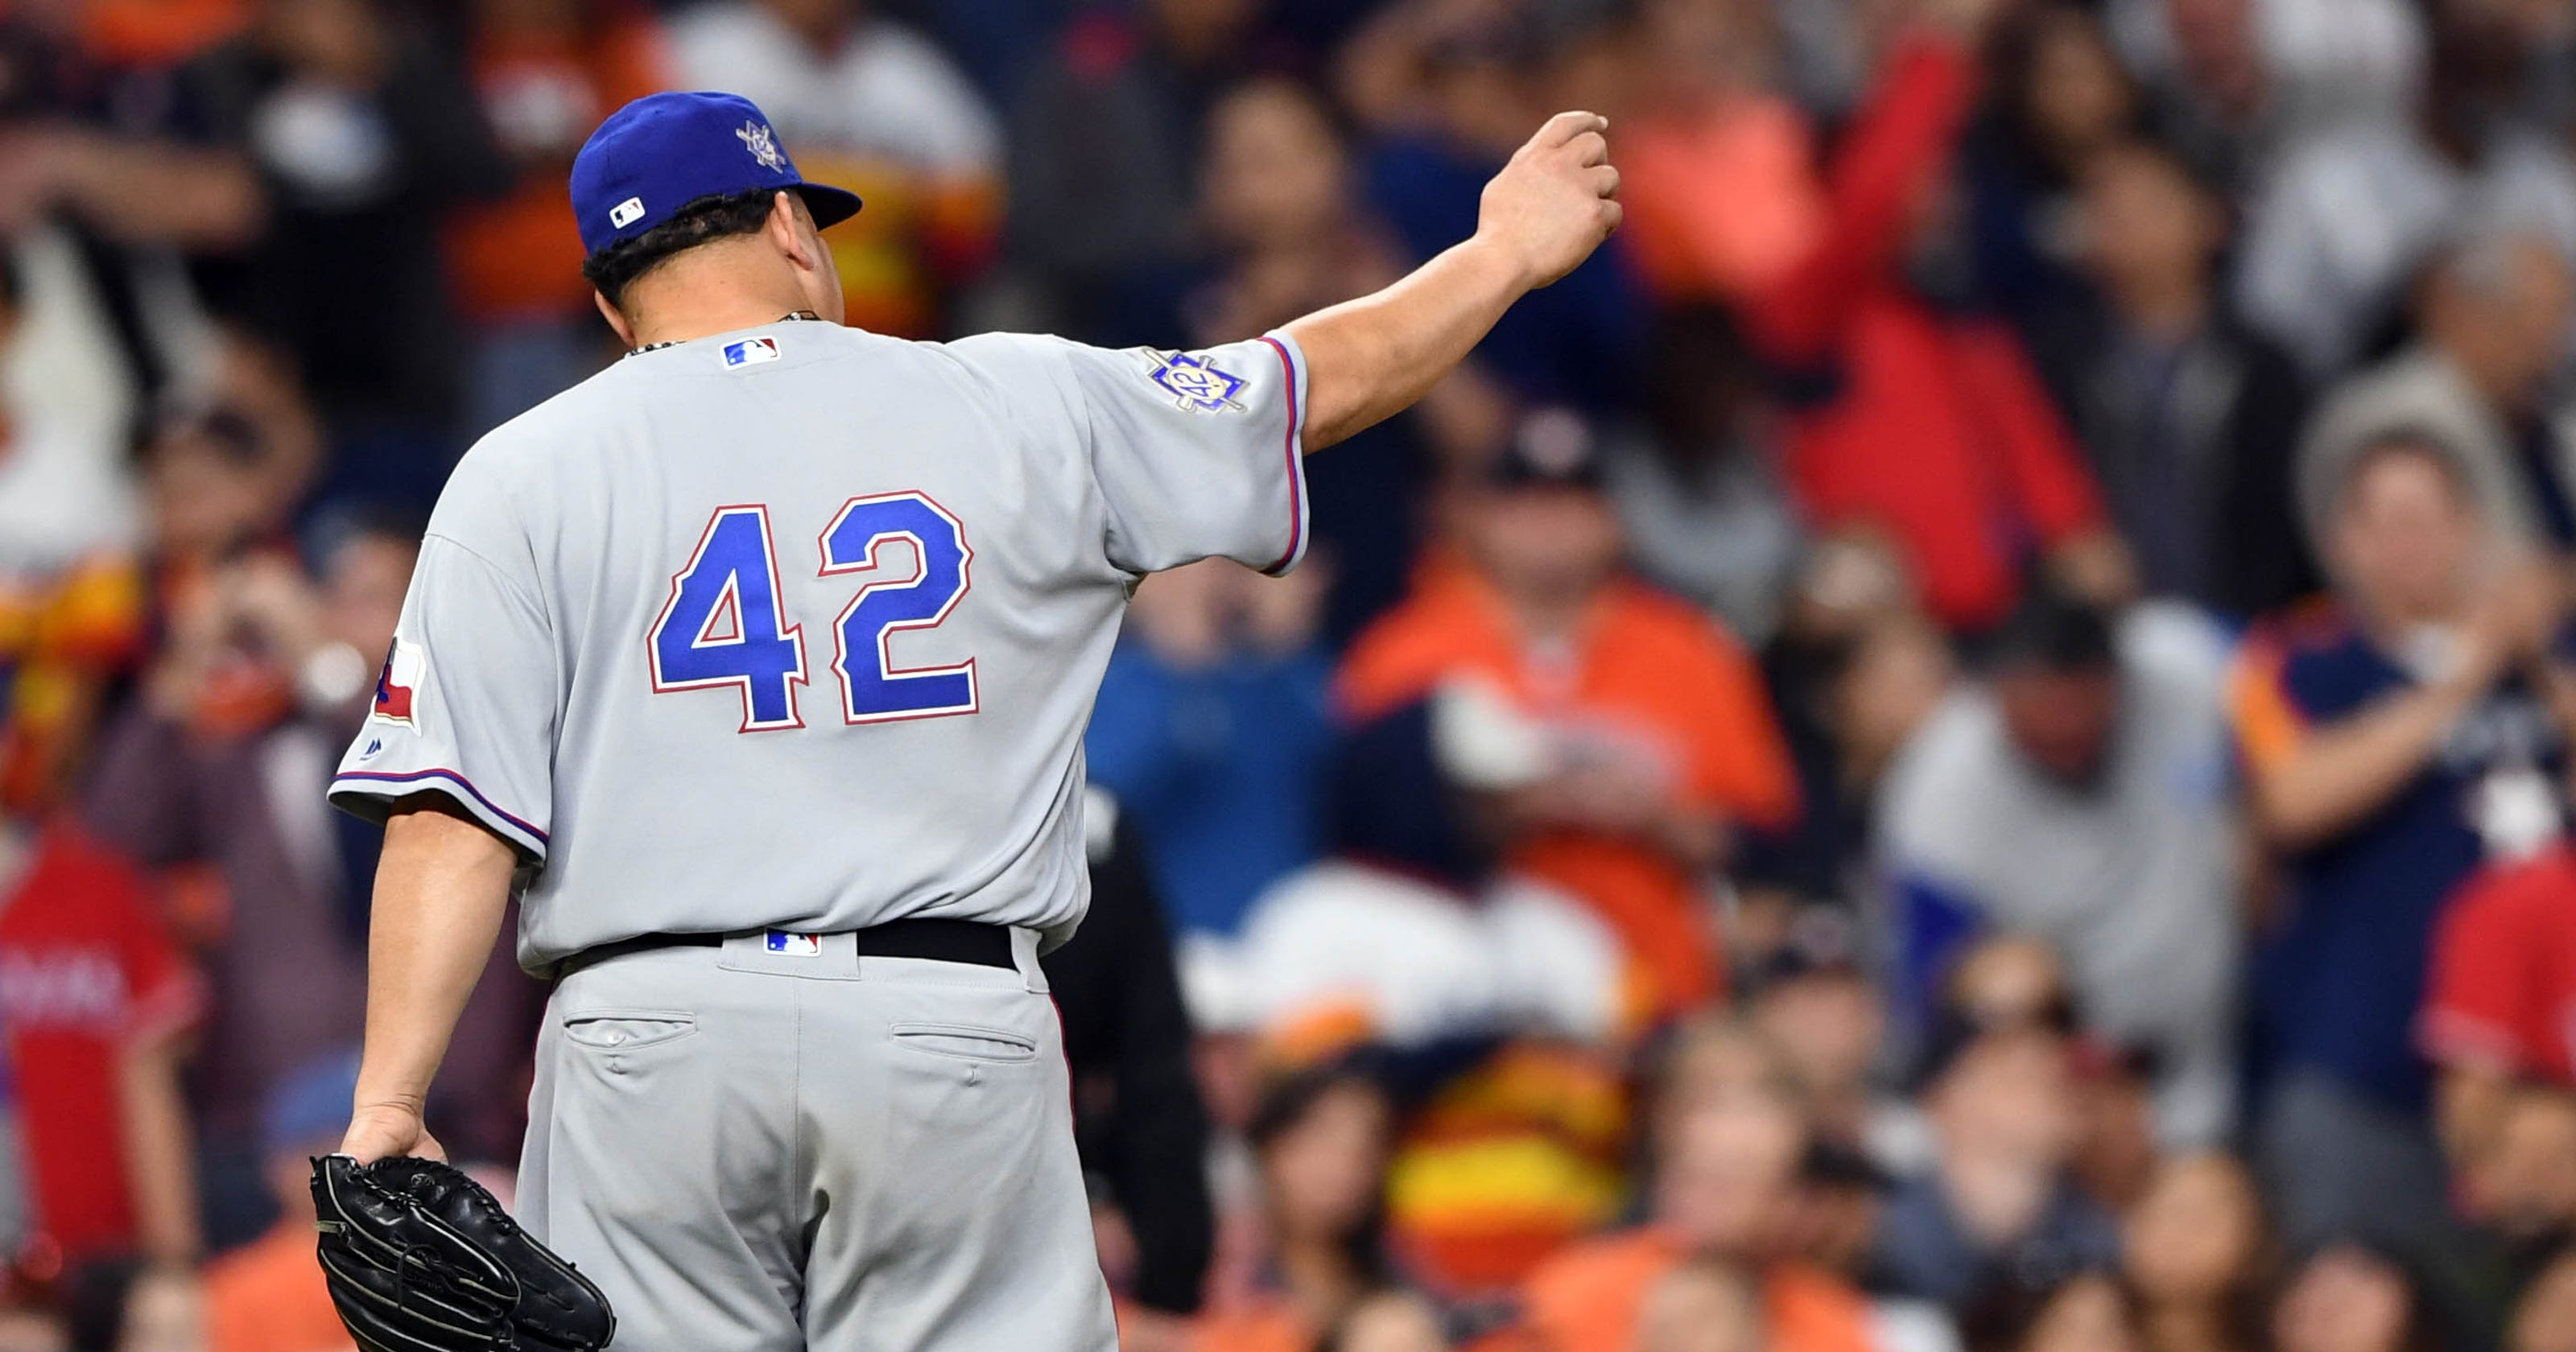 8a6a6ea566d Bartolo Colon takes perfect game into 8th inning